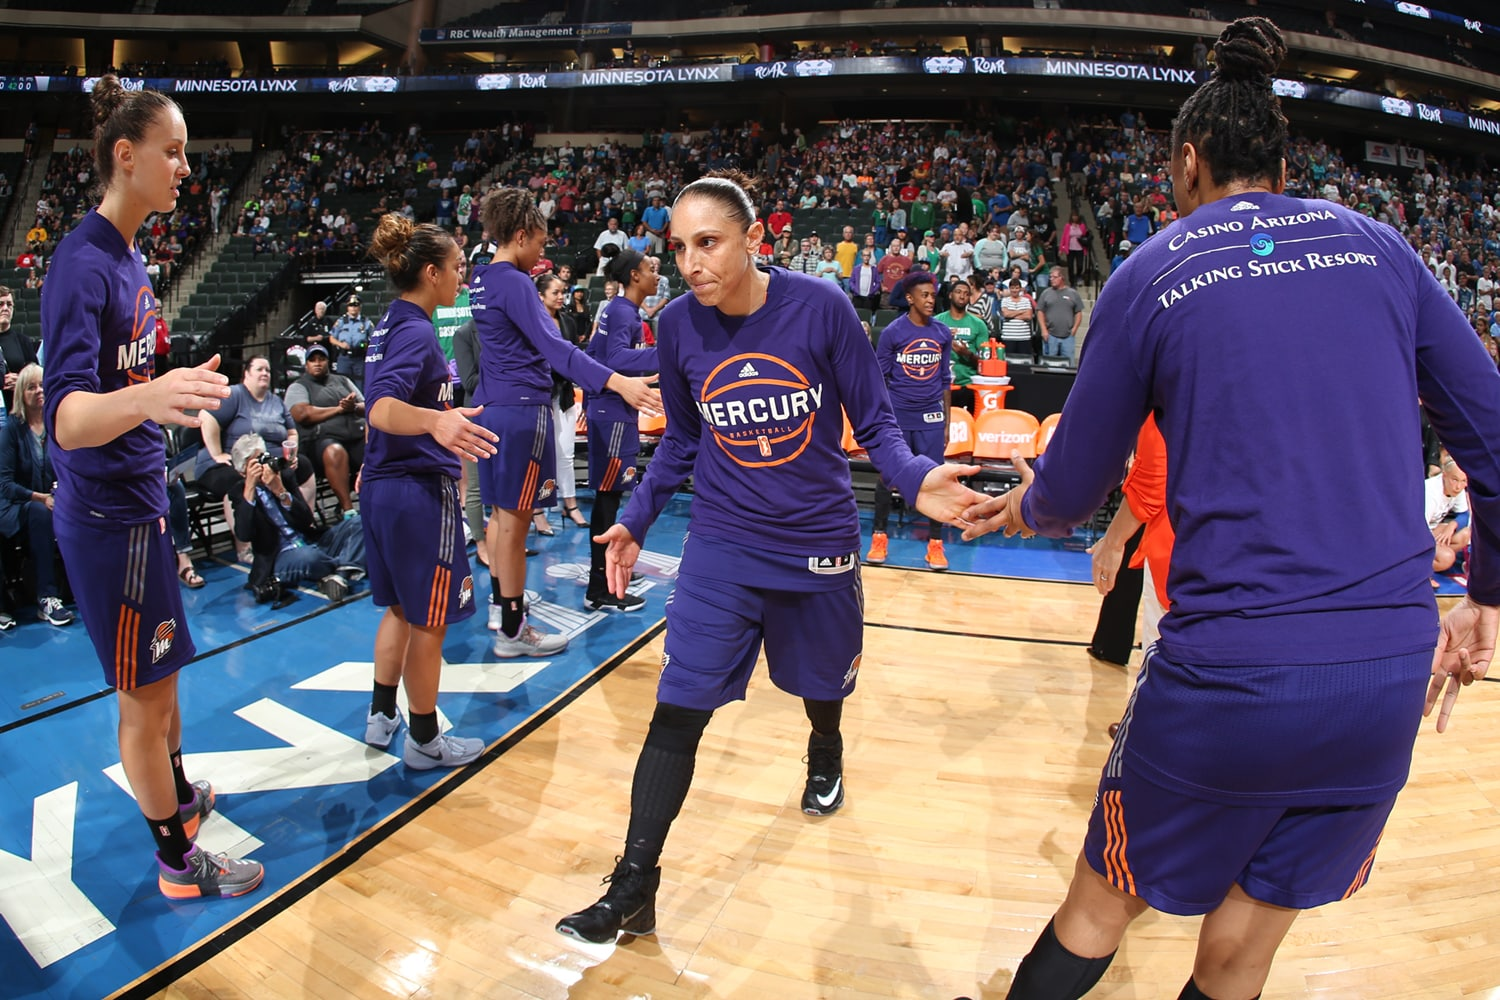 Diana Taurasi introduced for Phoenix Mercury v Minnesota Lynx